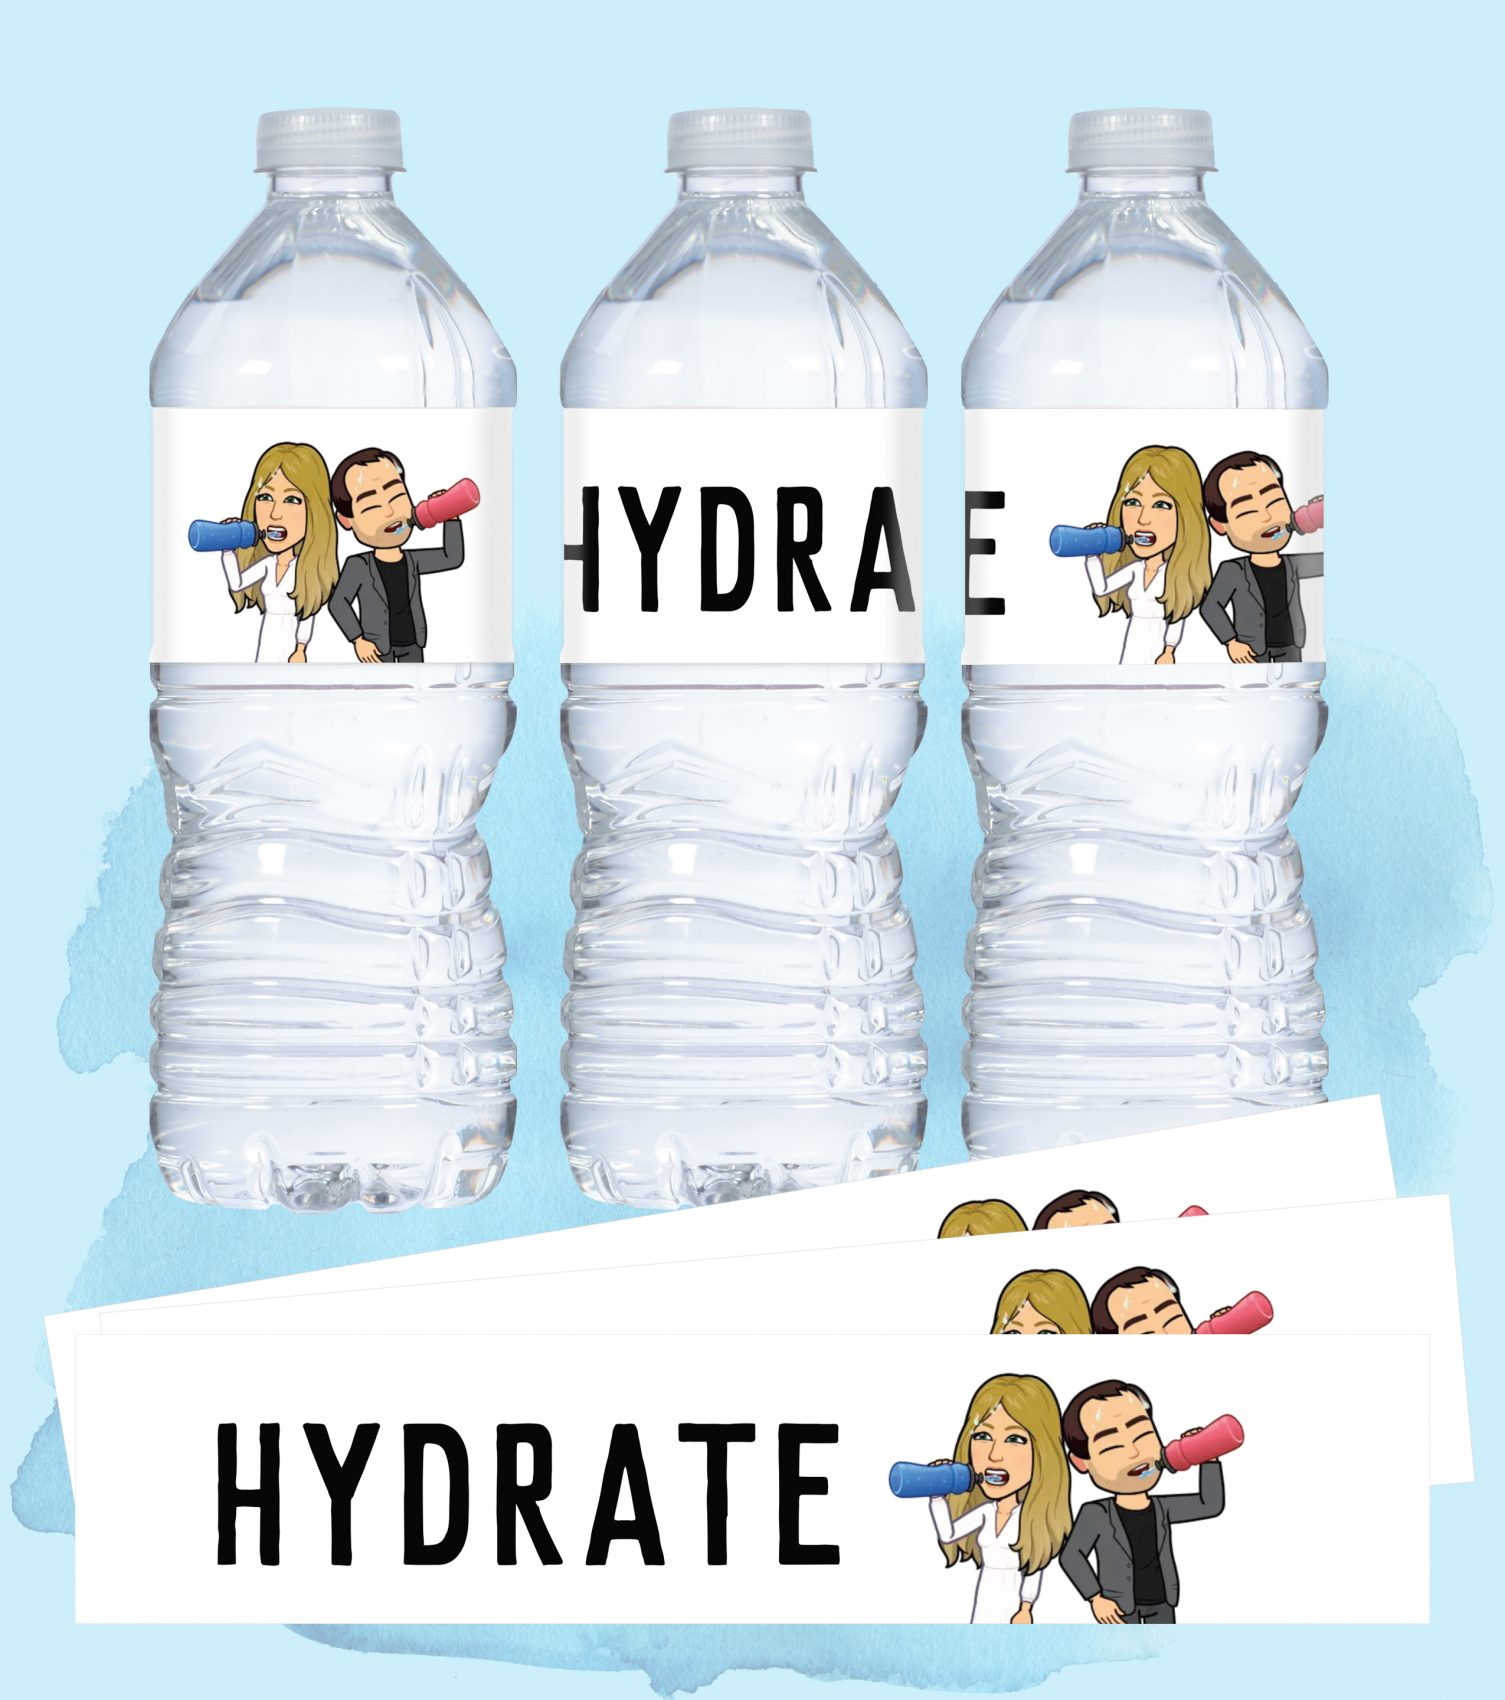 Caricature wedding couple on water bottle labels. Wedding water bottle labels are waterproof and self-adhesive.